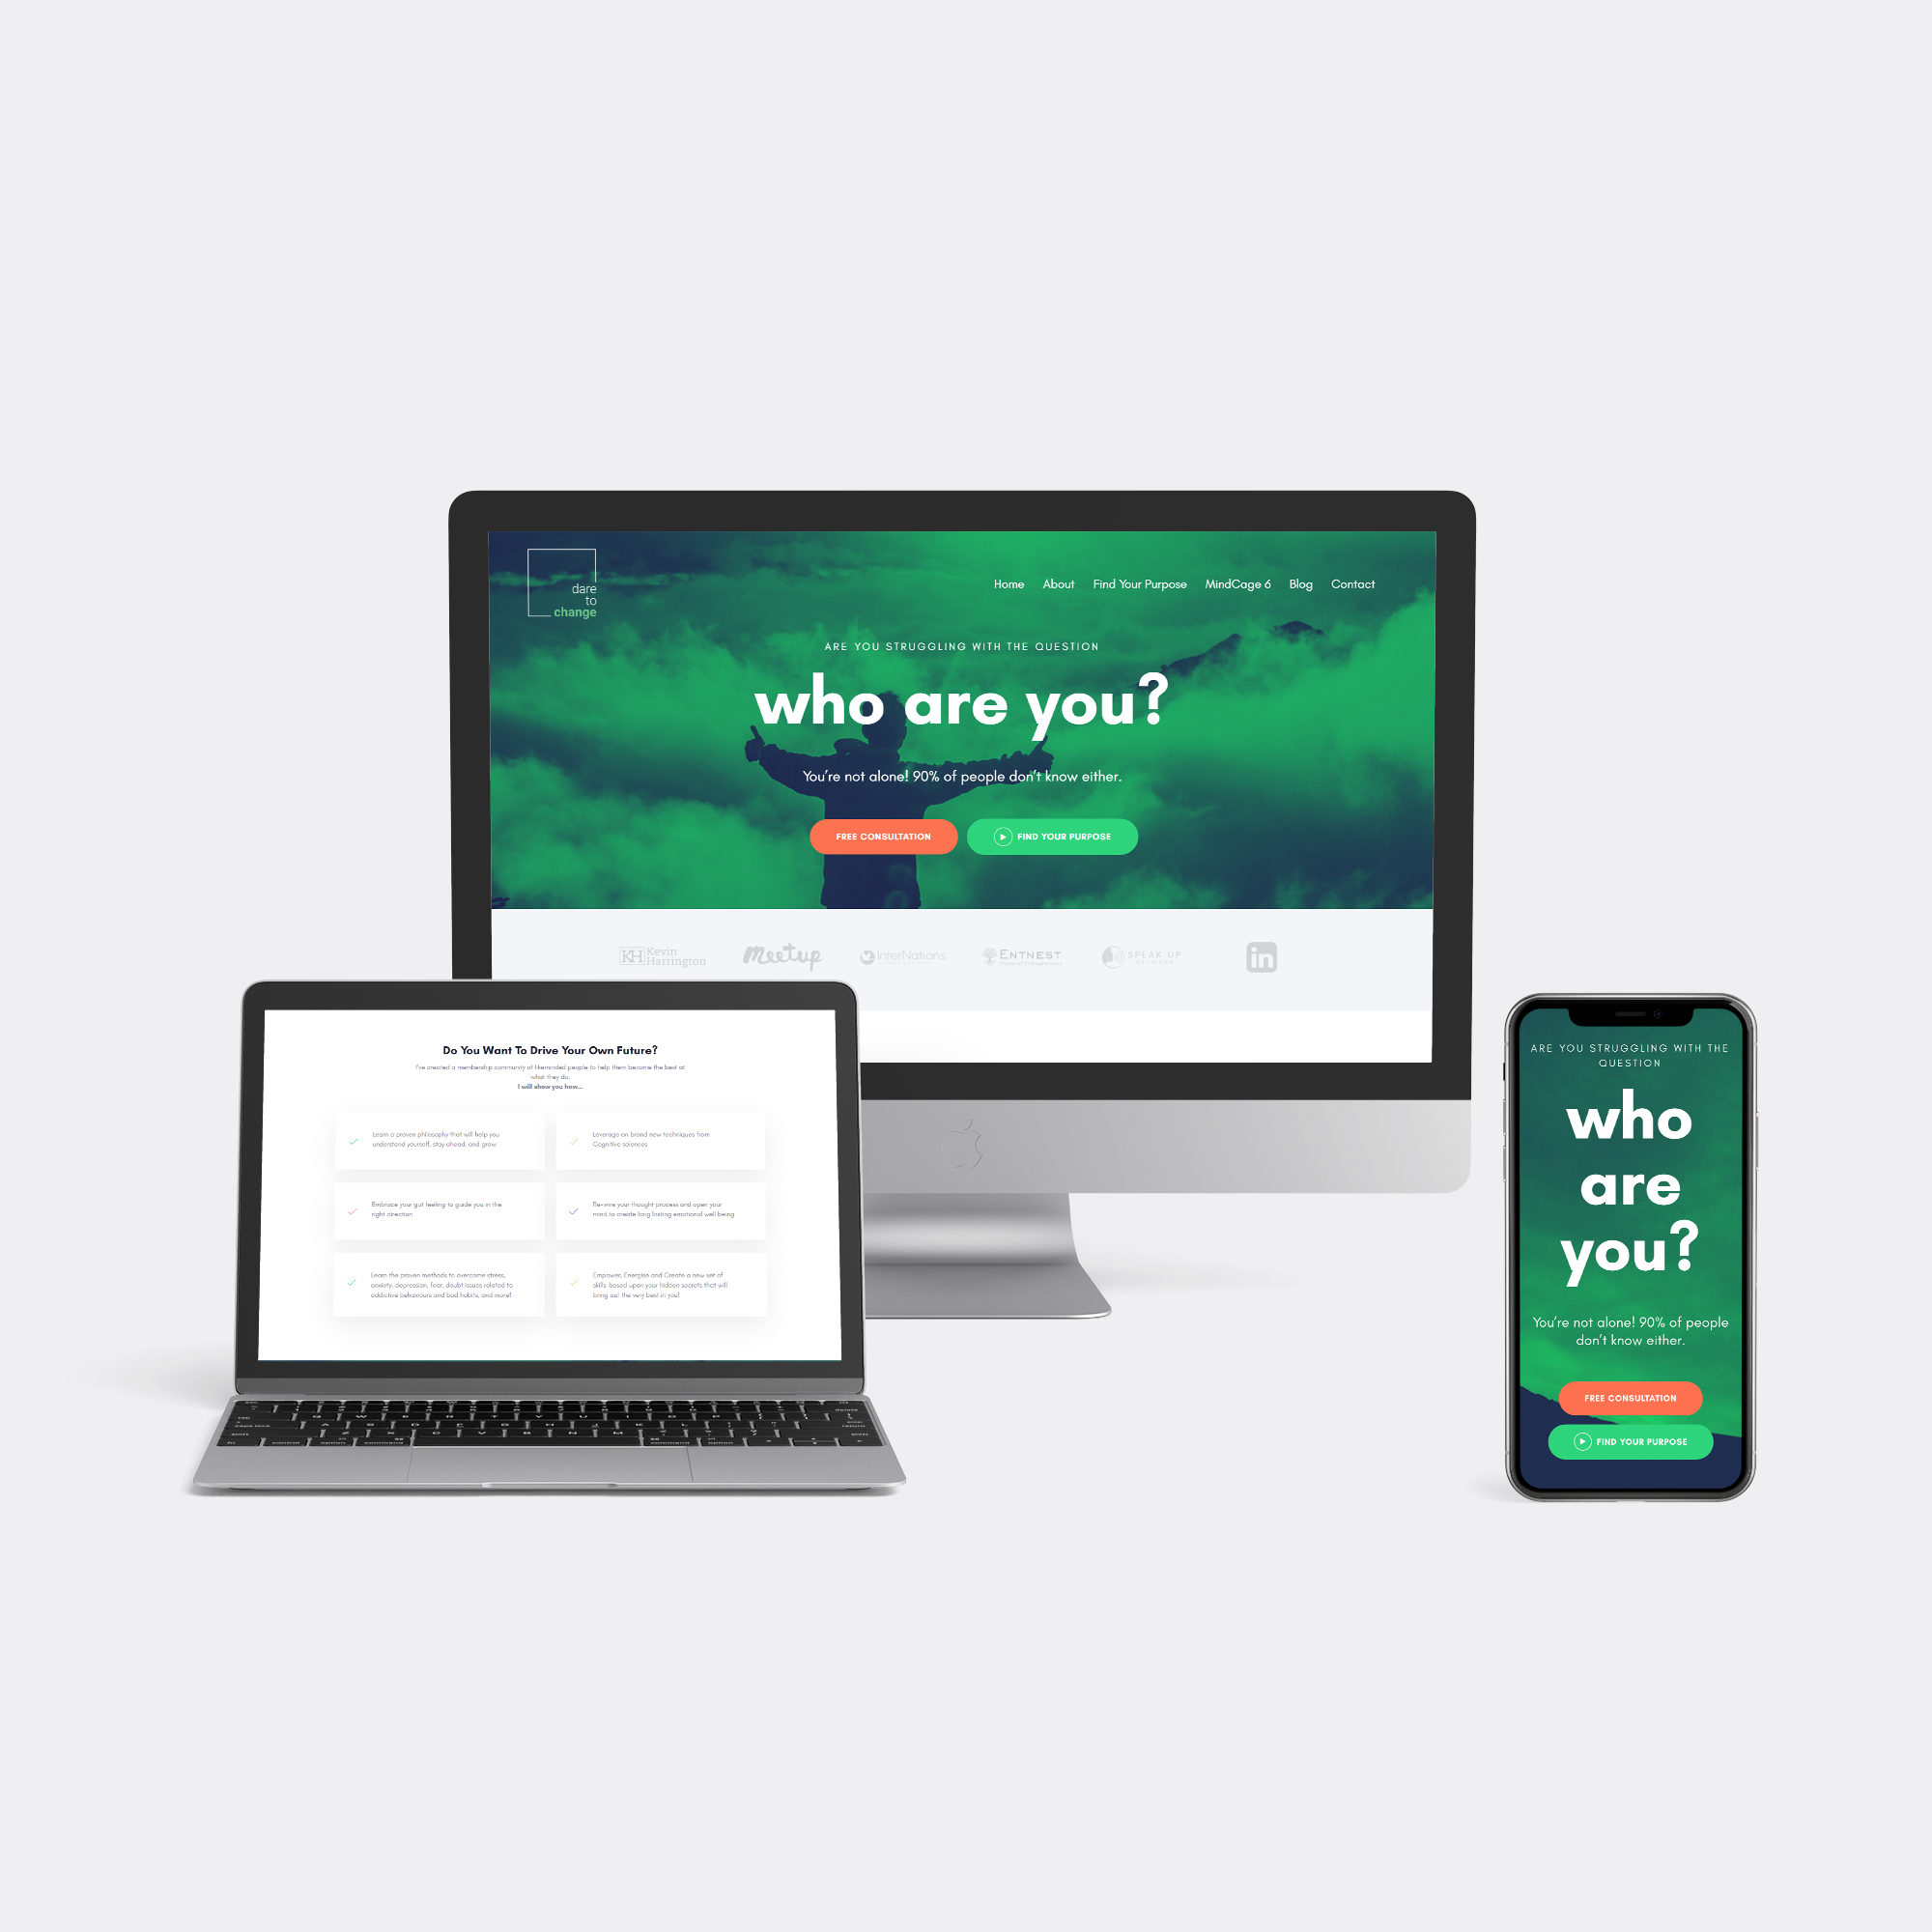 A set of iMac, Macbook, and iPhone showing Dare to Change website